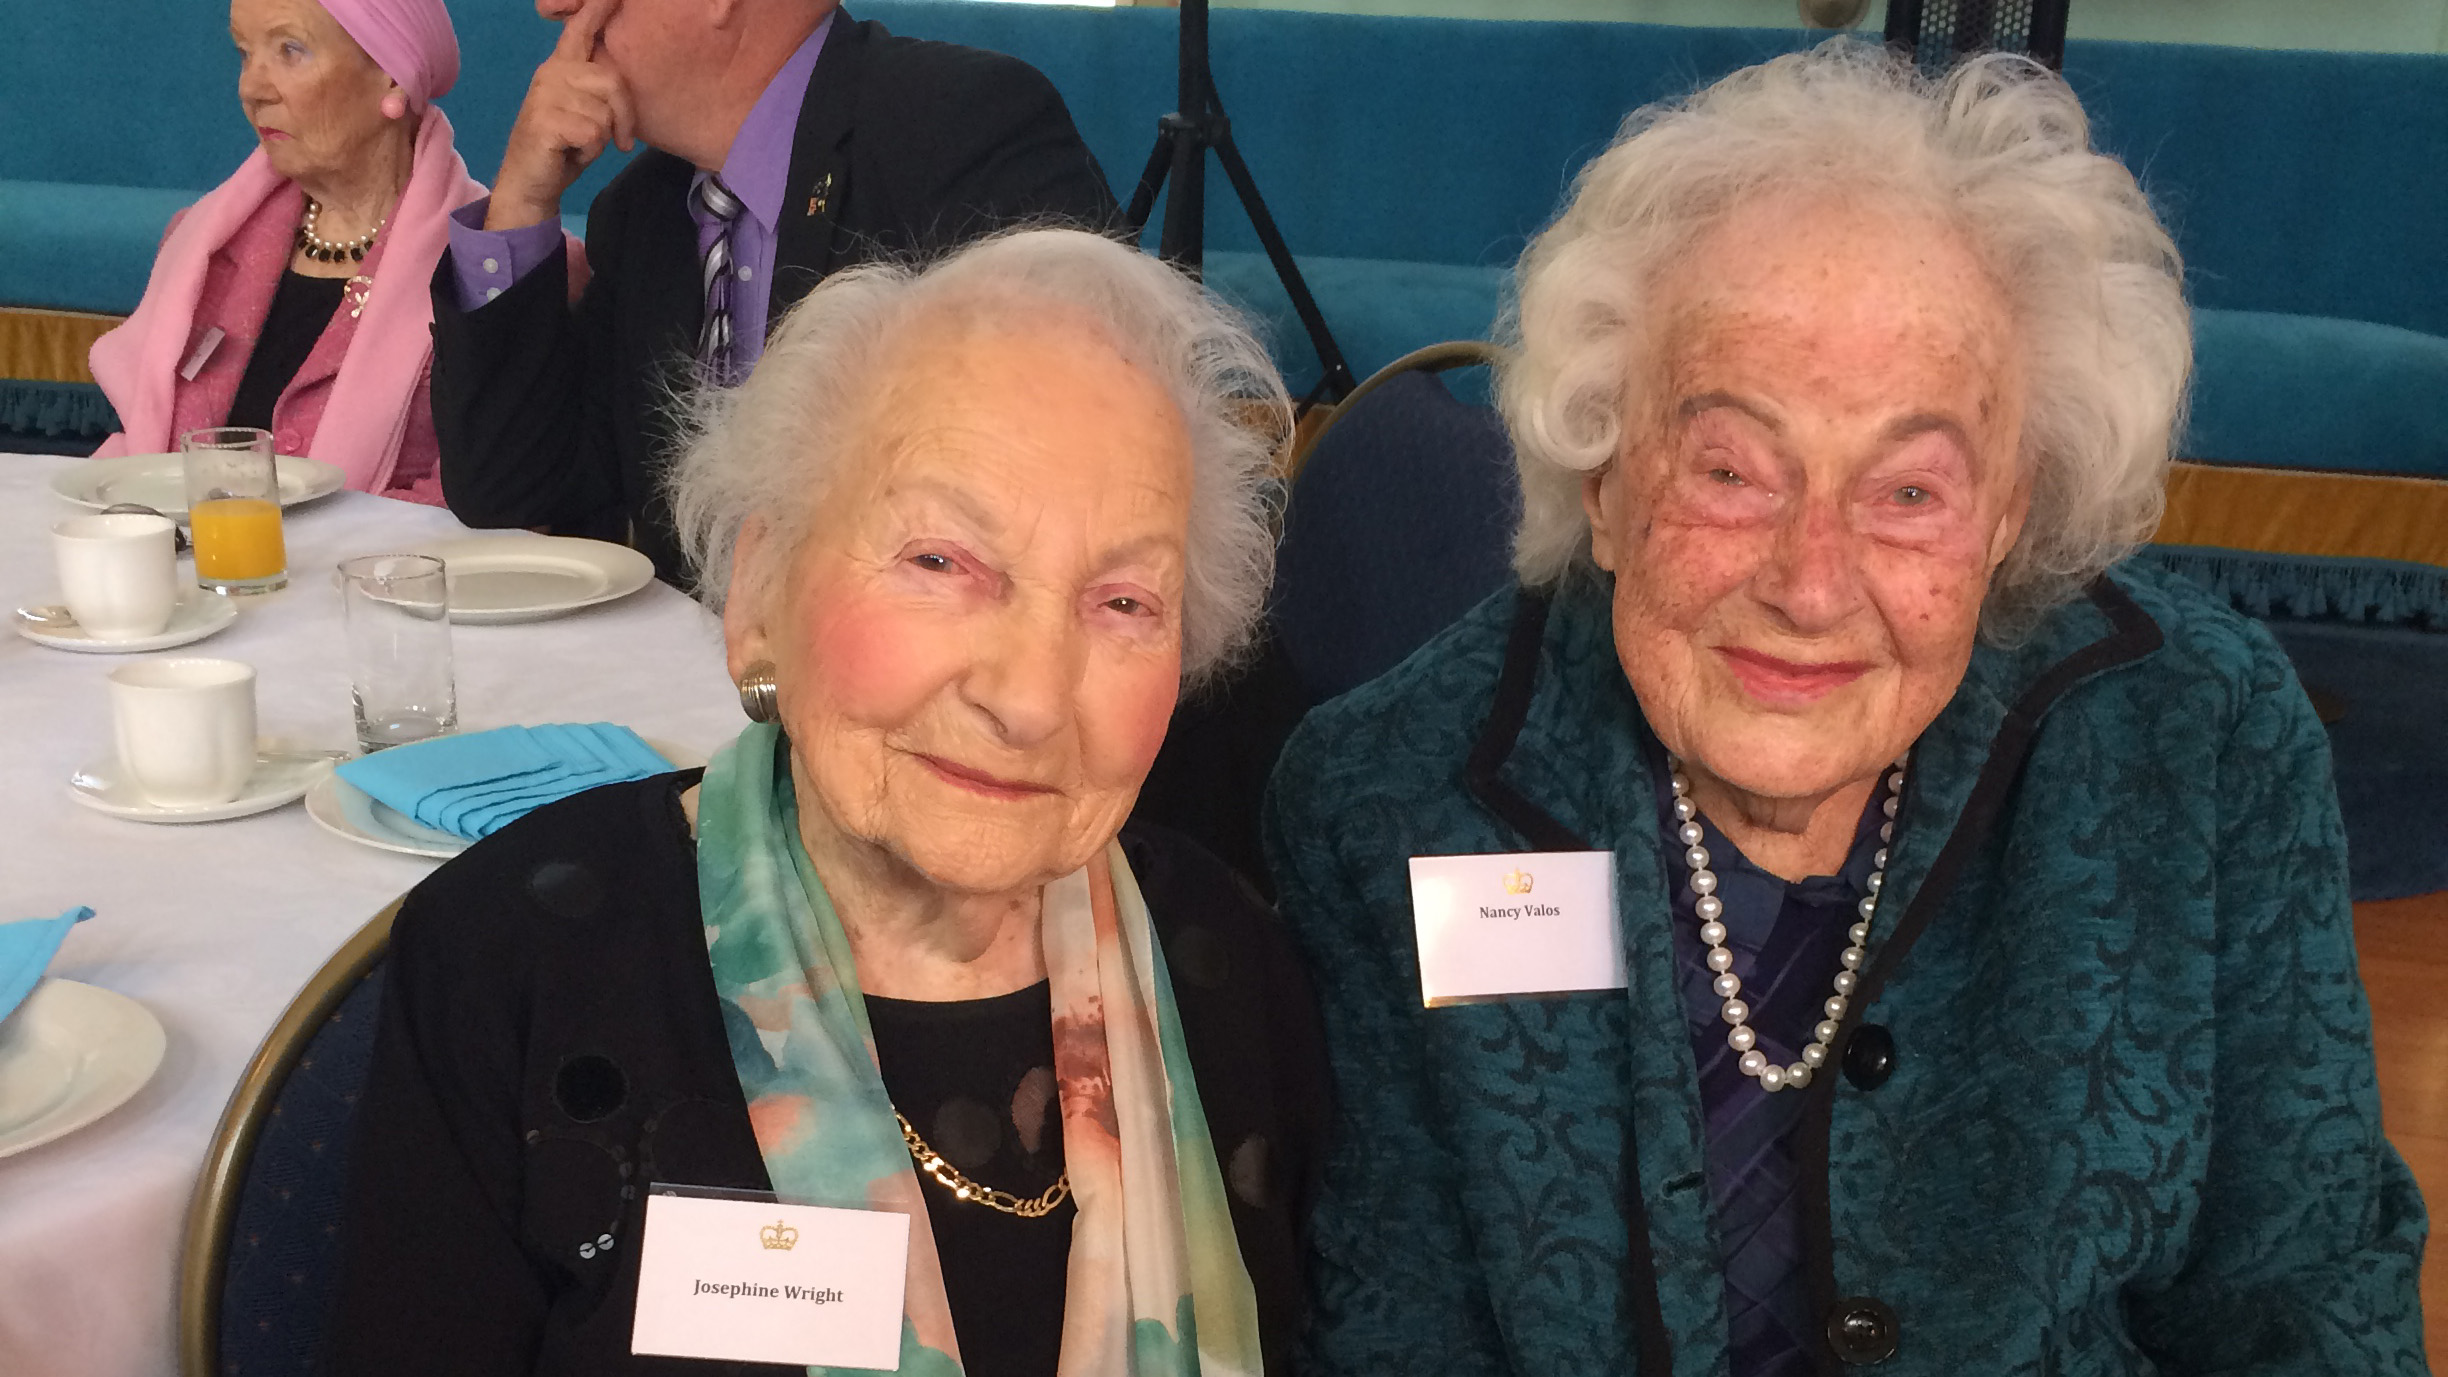 Josephine Wright and Nancy Valos have been best friends since they met at school in St Kilda. (Madeline Slattery)